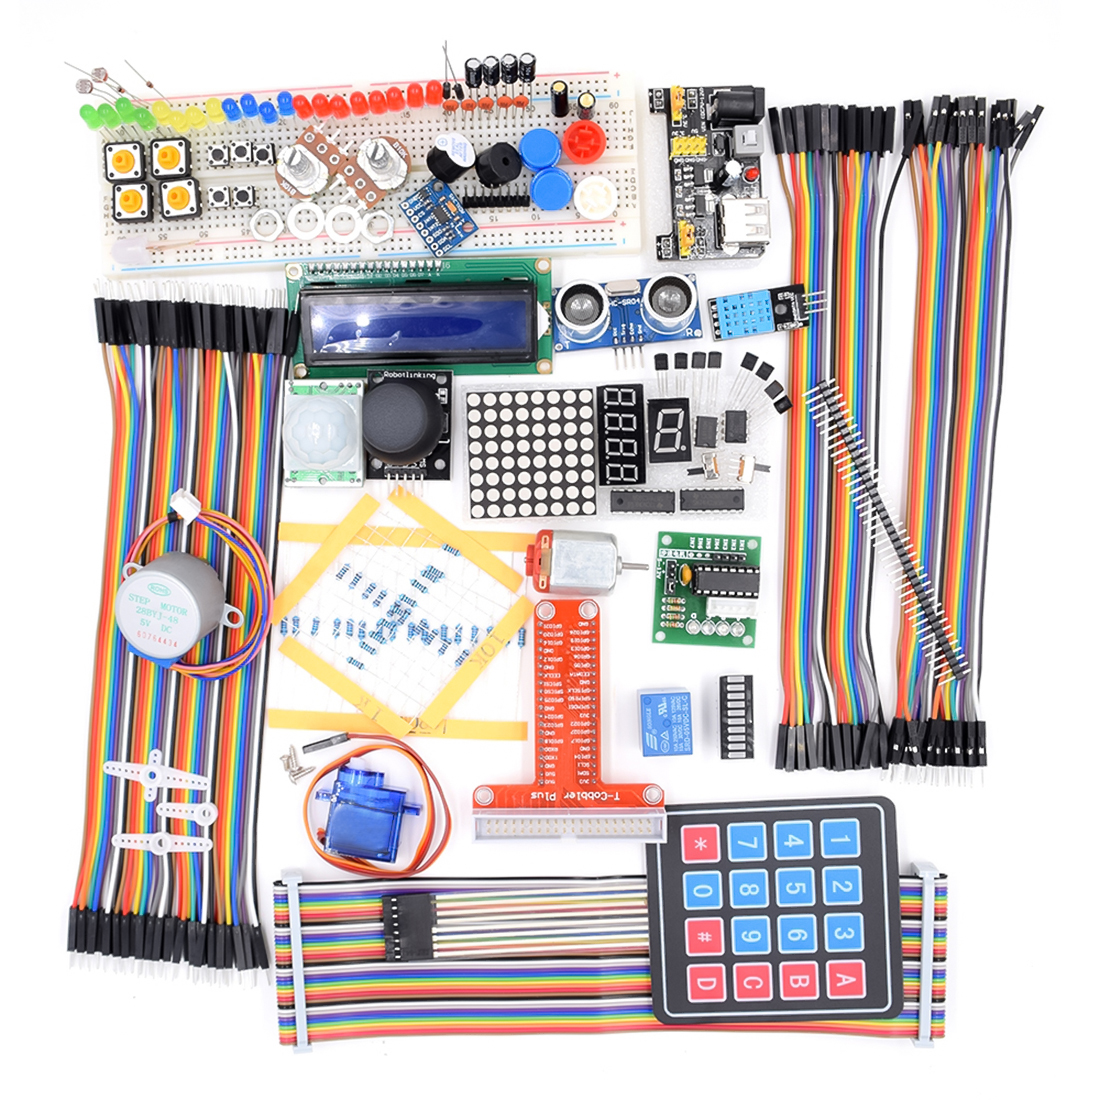 MODIKER Ultimate Learning Kit With LCD1602 Three-axis Accelerometer Sensor Module(ADXL345) For Raspberry Pi Programmable Toys